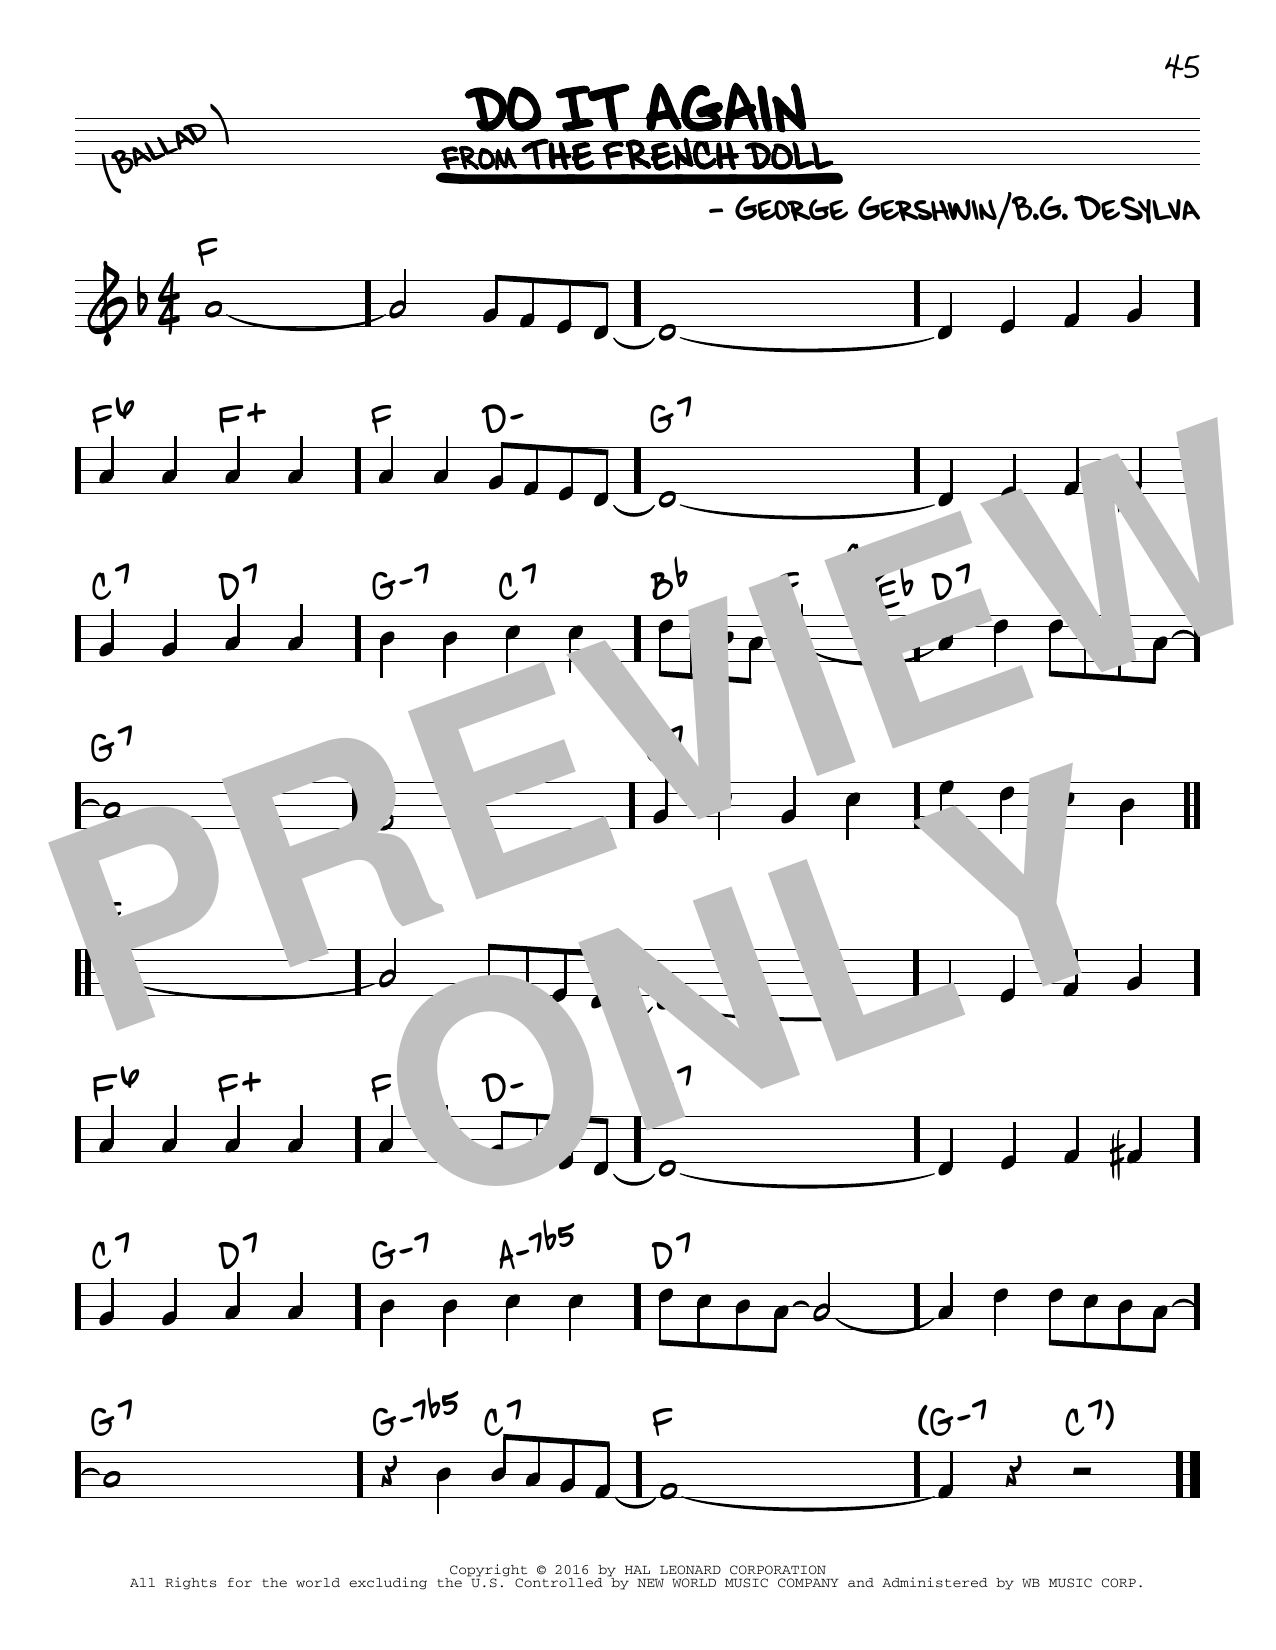 George Gershwin Do It Again sheet music notes and chords